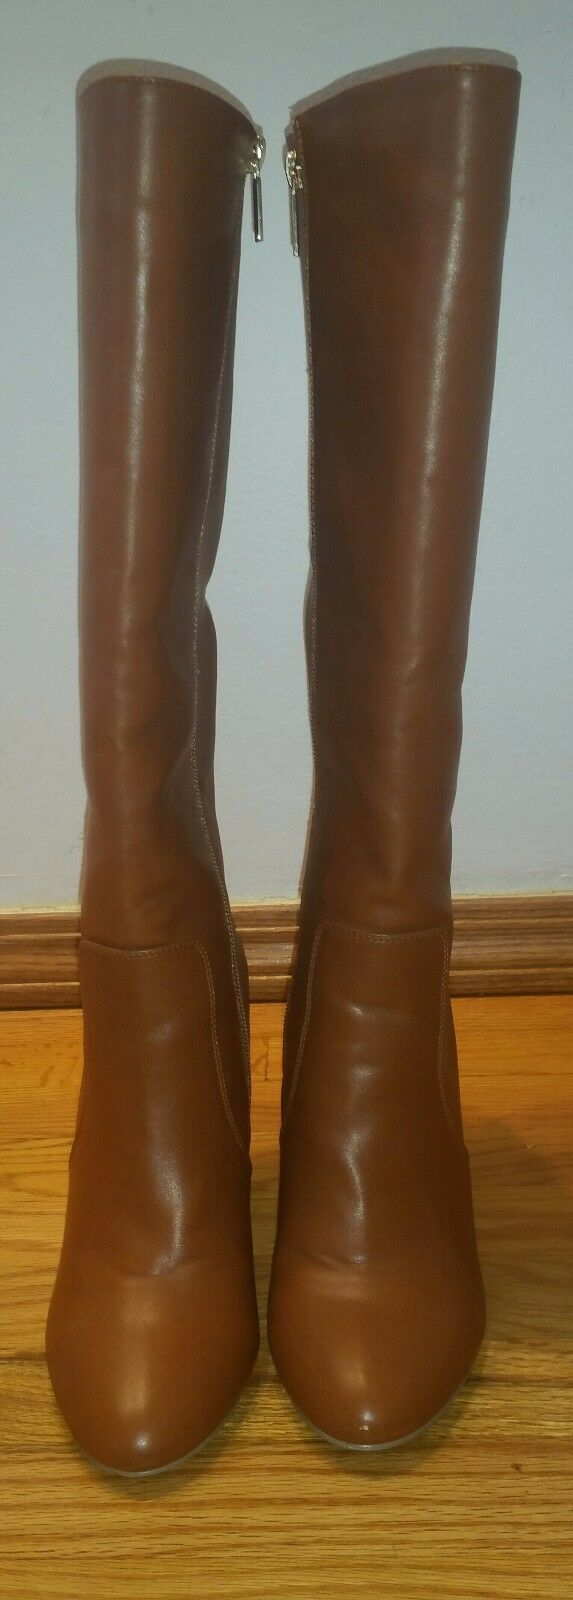 Express   Womens  Knee Boots  Brown  size 8us Fits Like 7.5